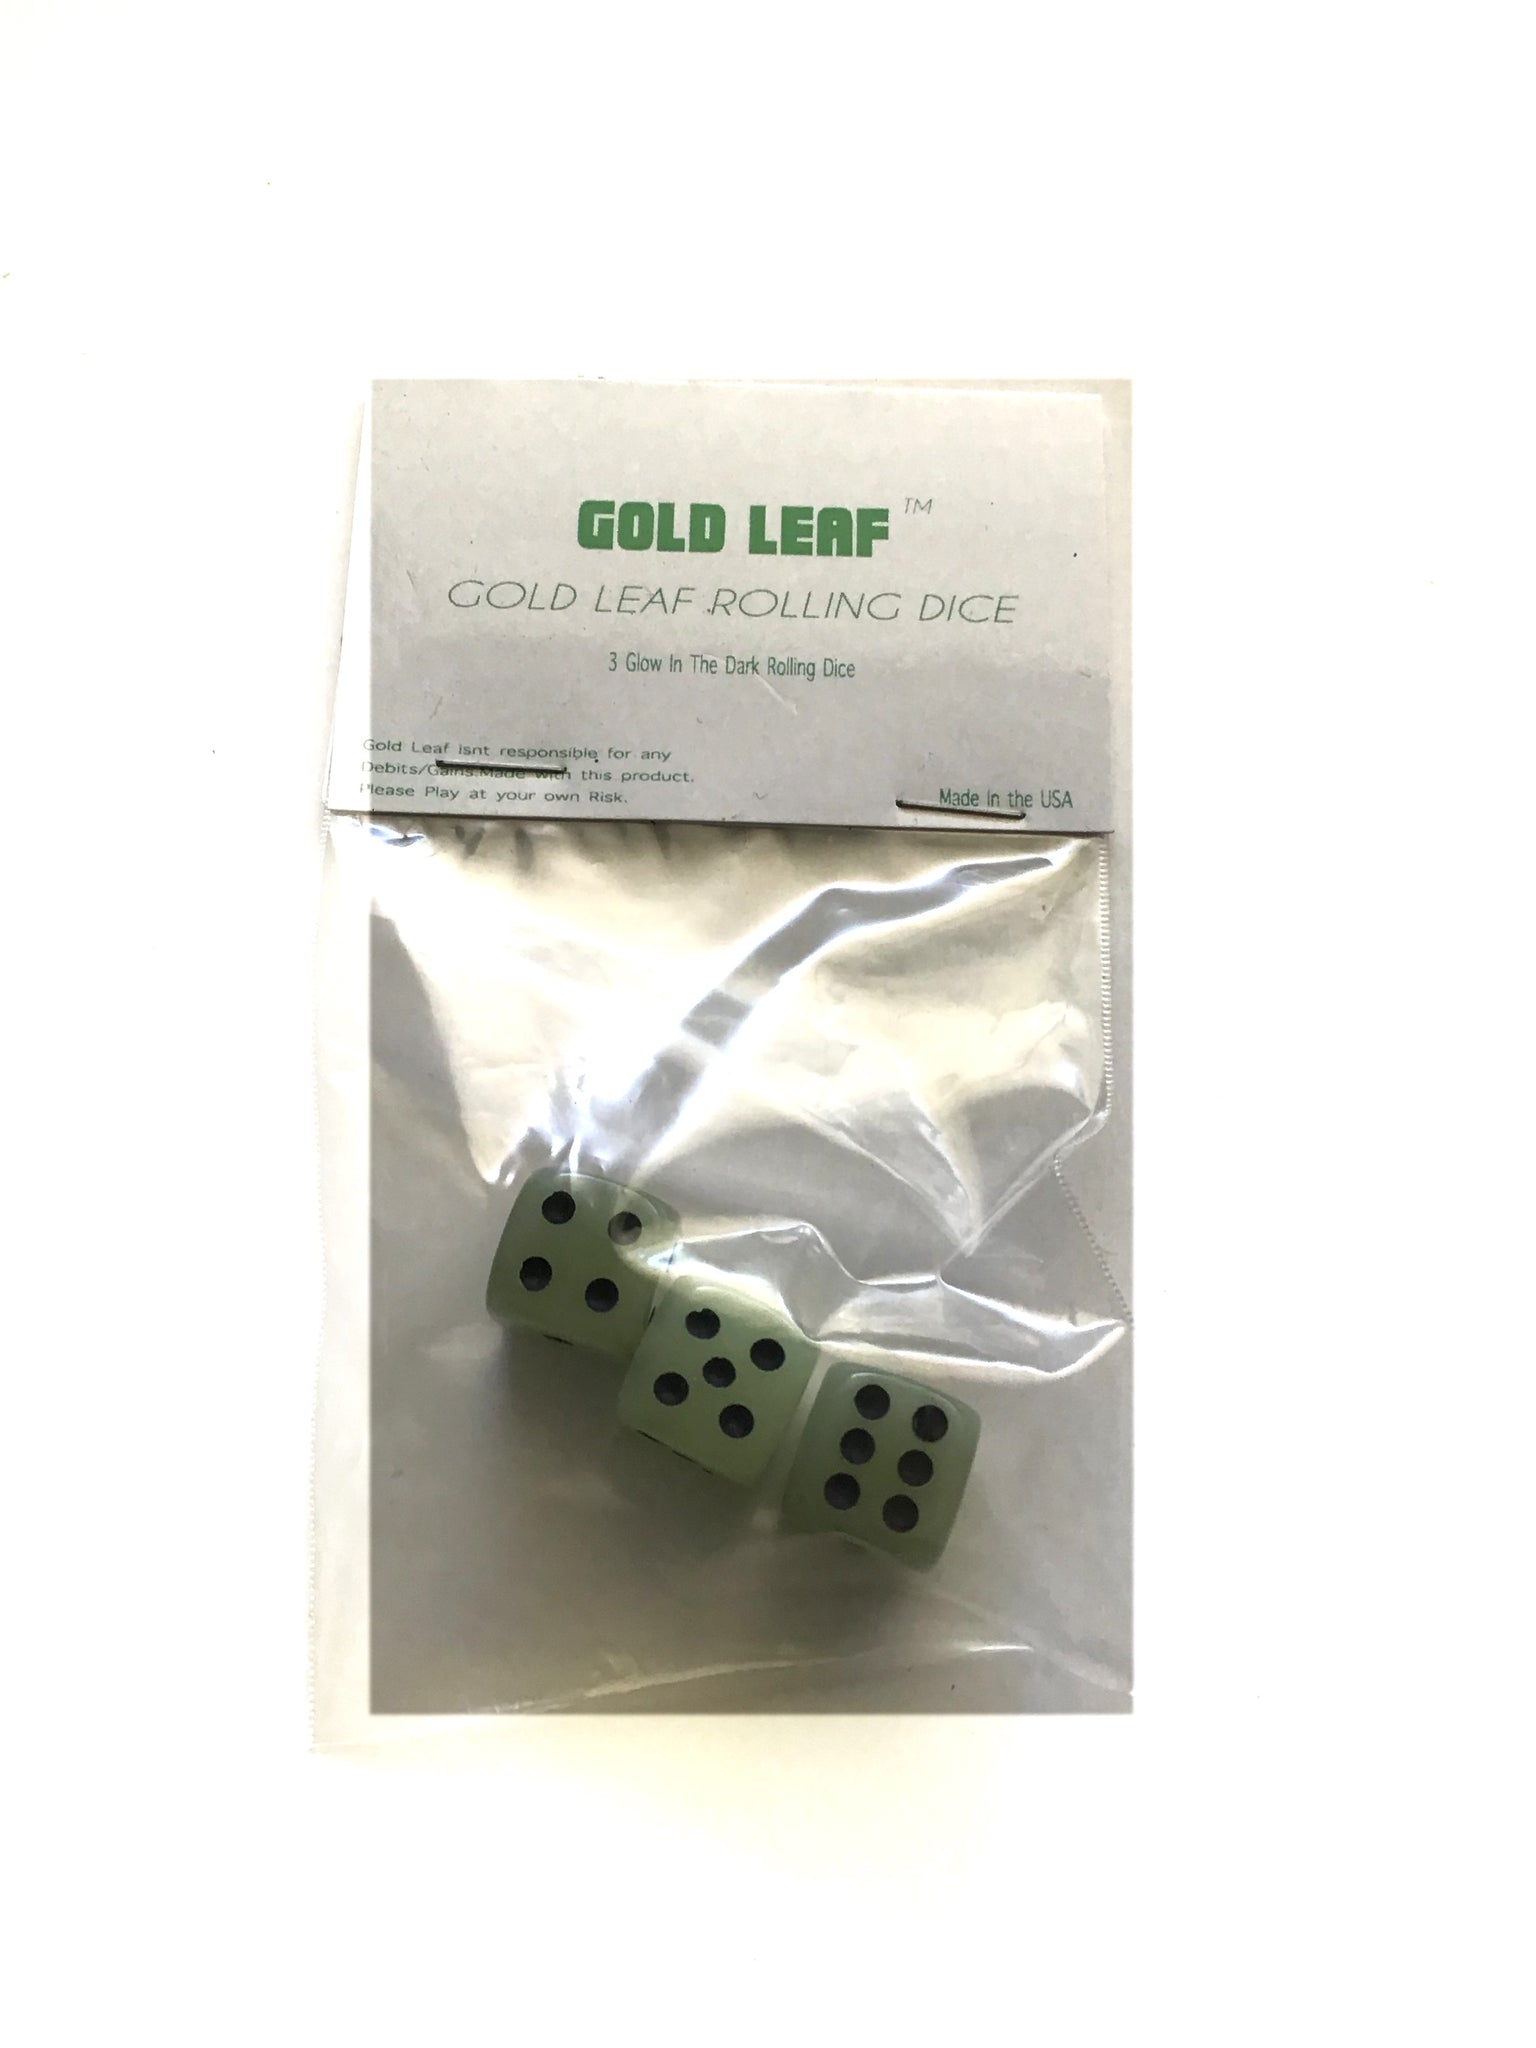 GOLD LEAF - ROLLING DICE ™